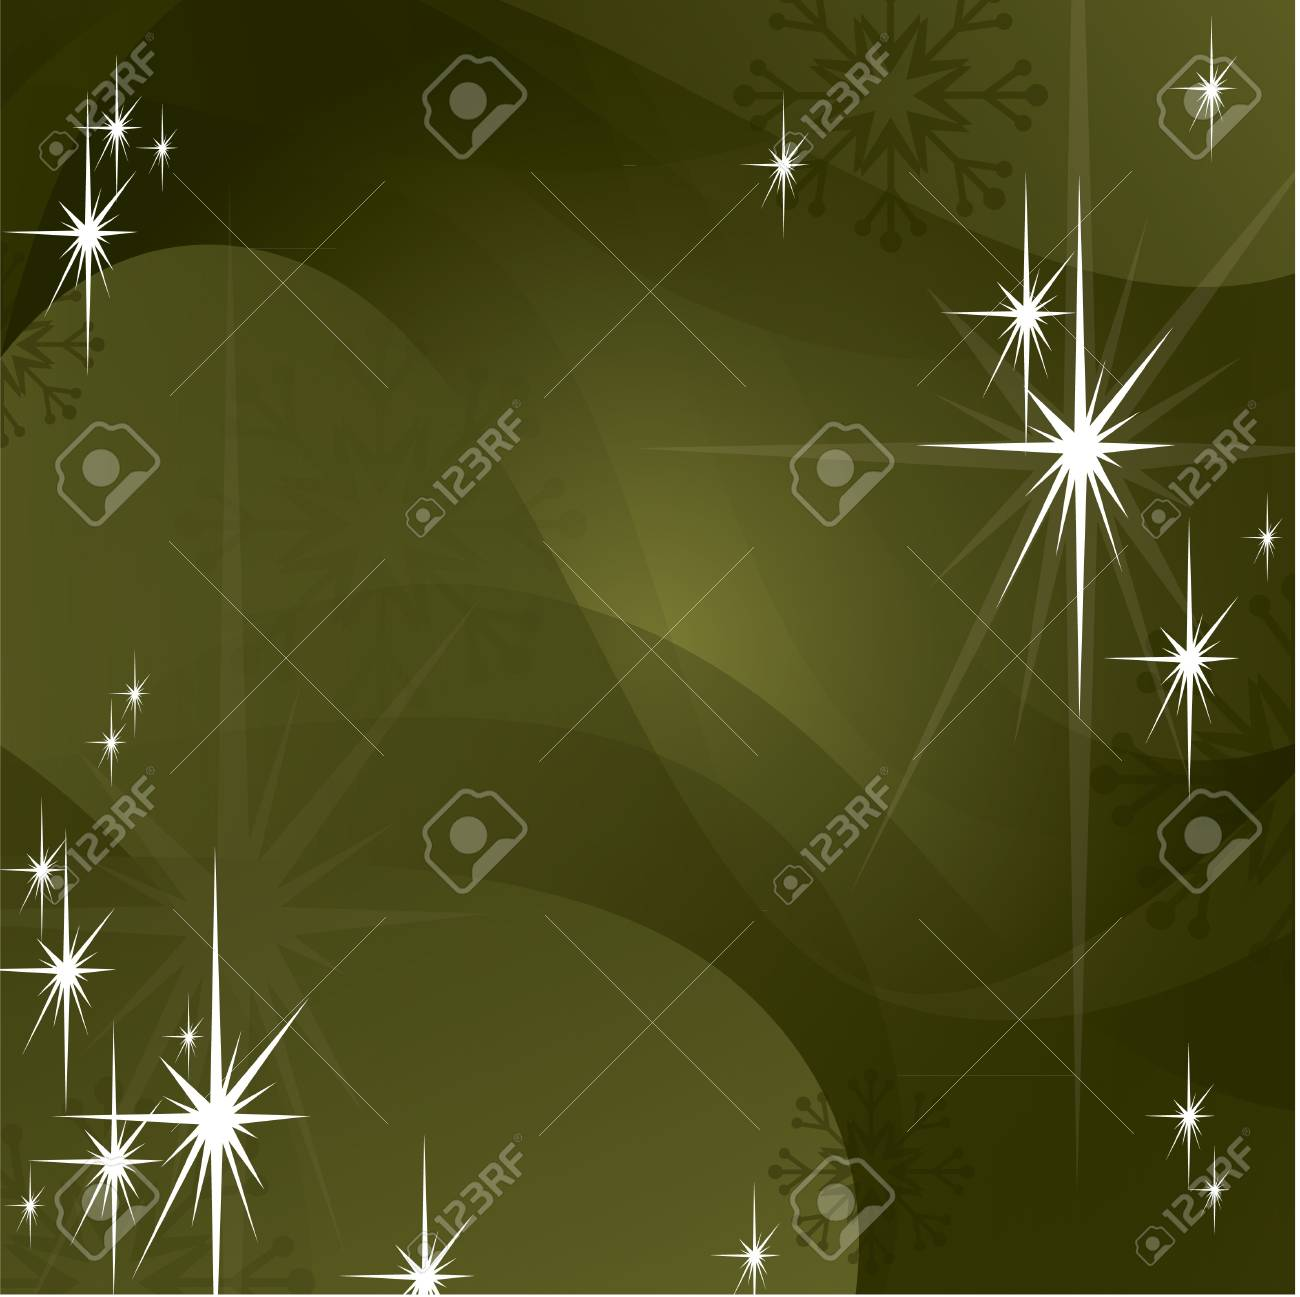 Christmas Background Stock Vector - 21711389